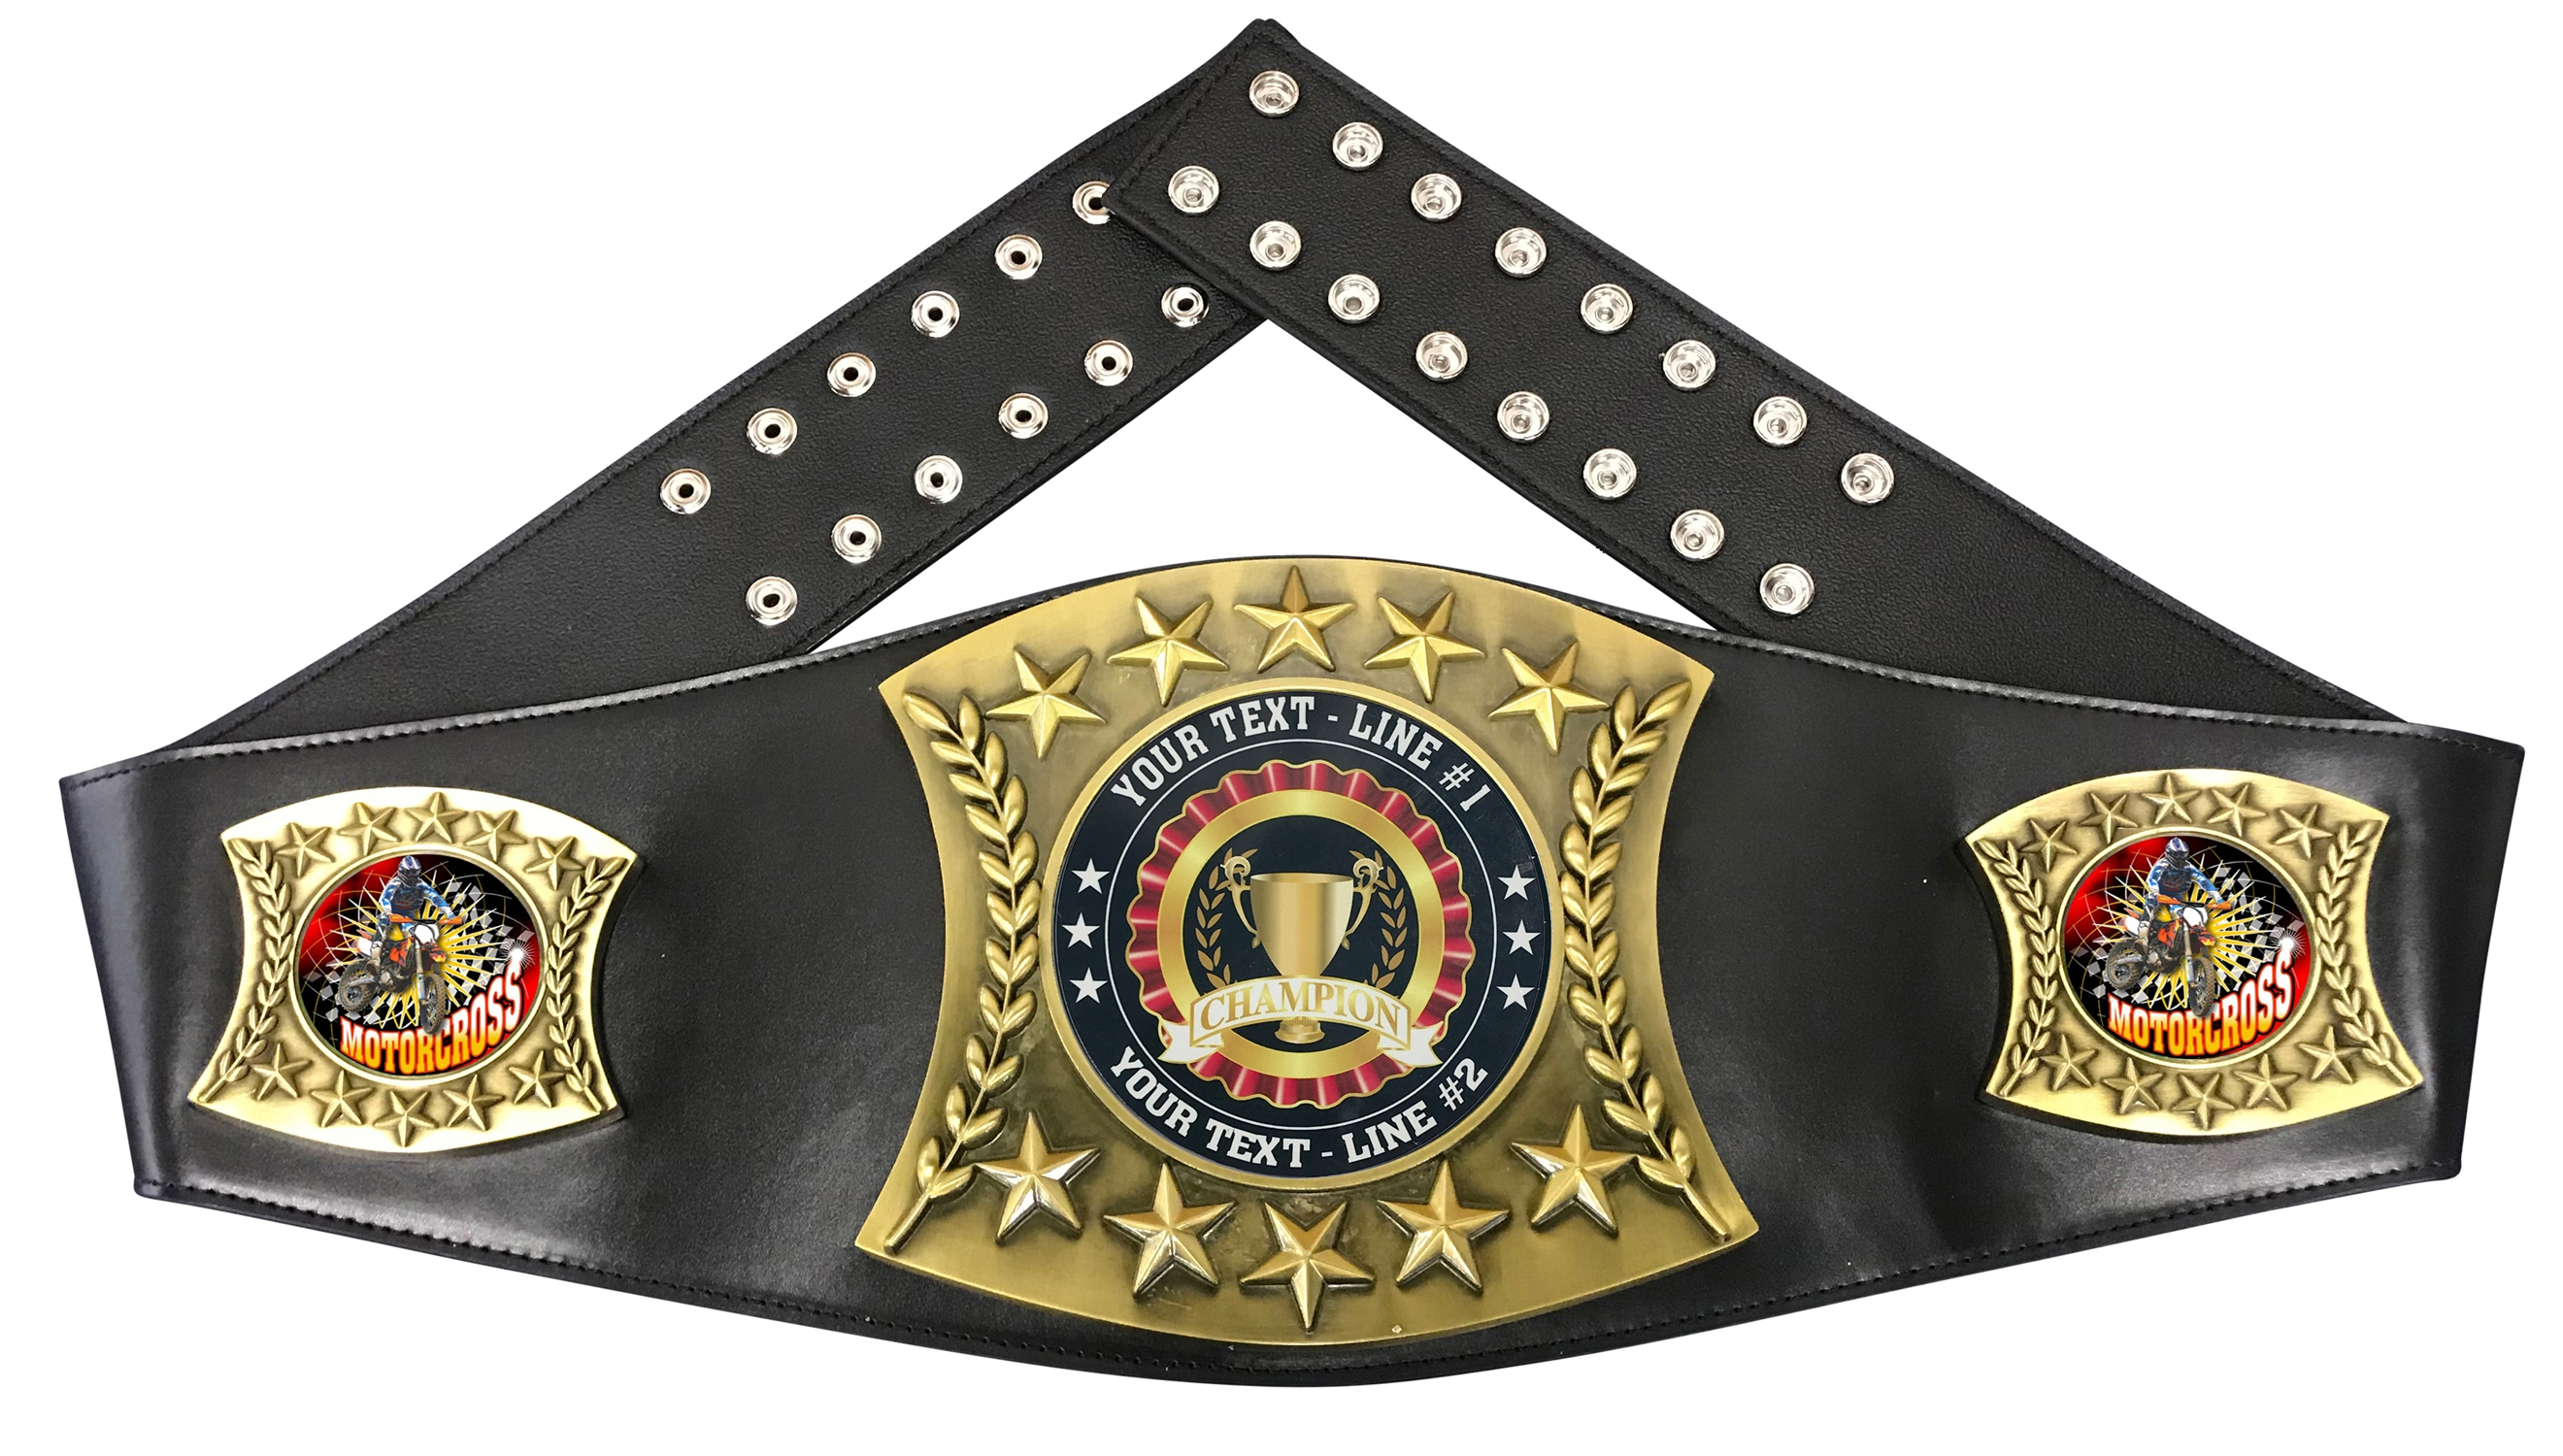 Motorcross Personalized Championship Belt